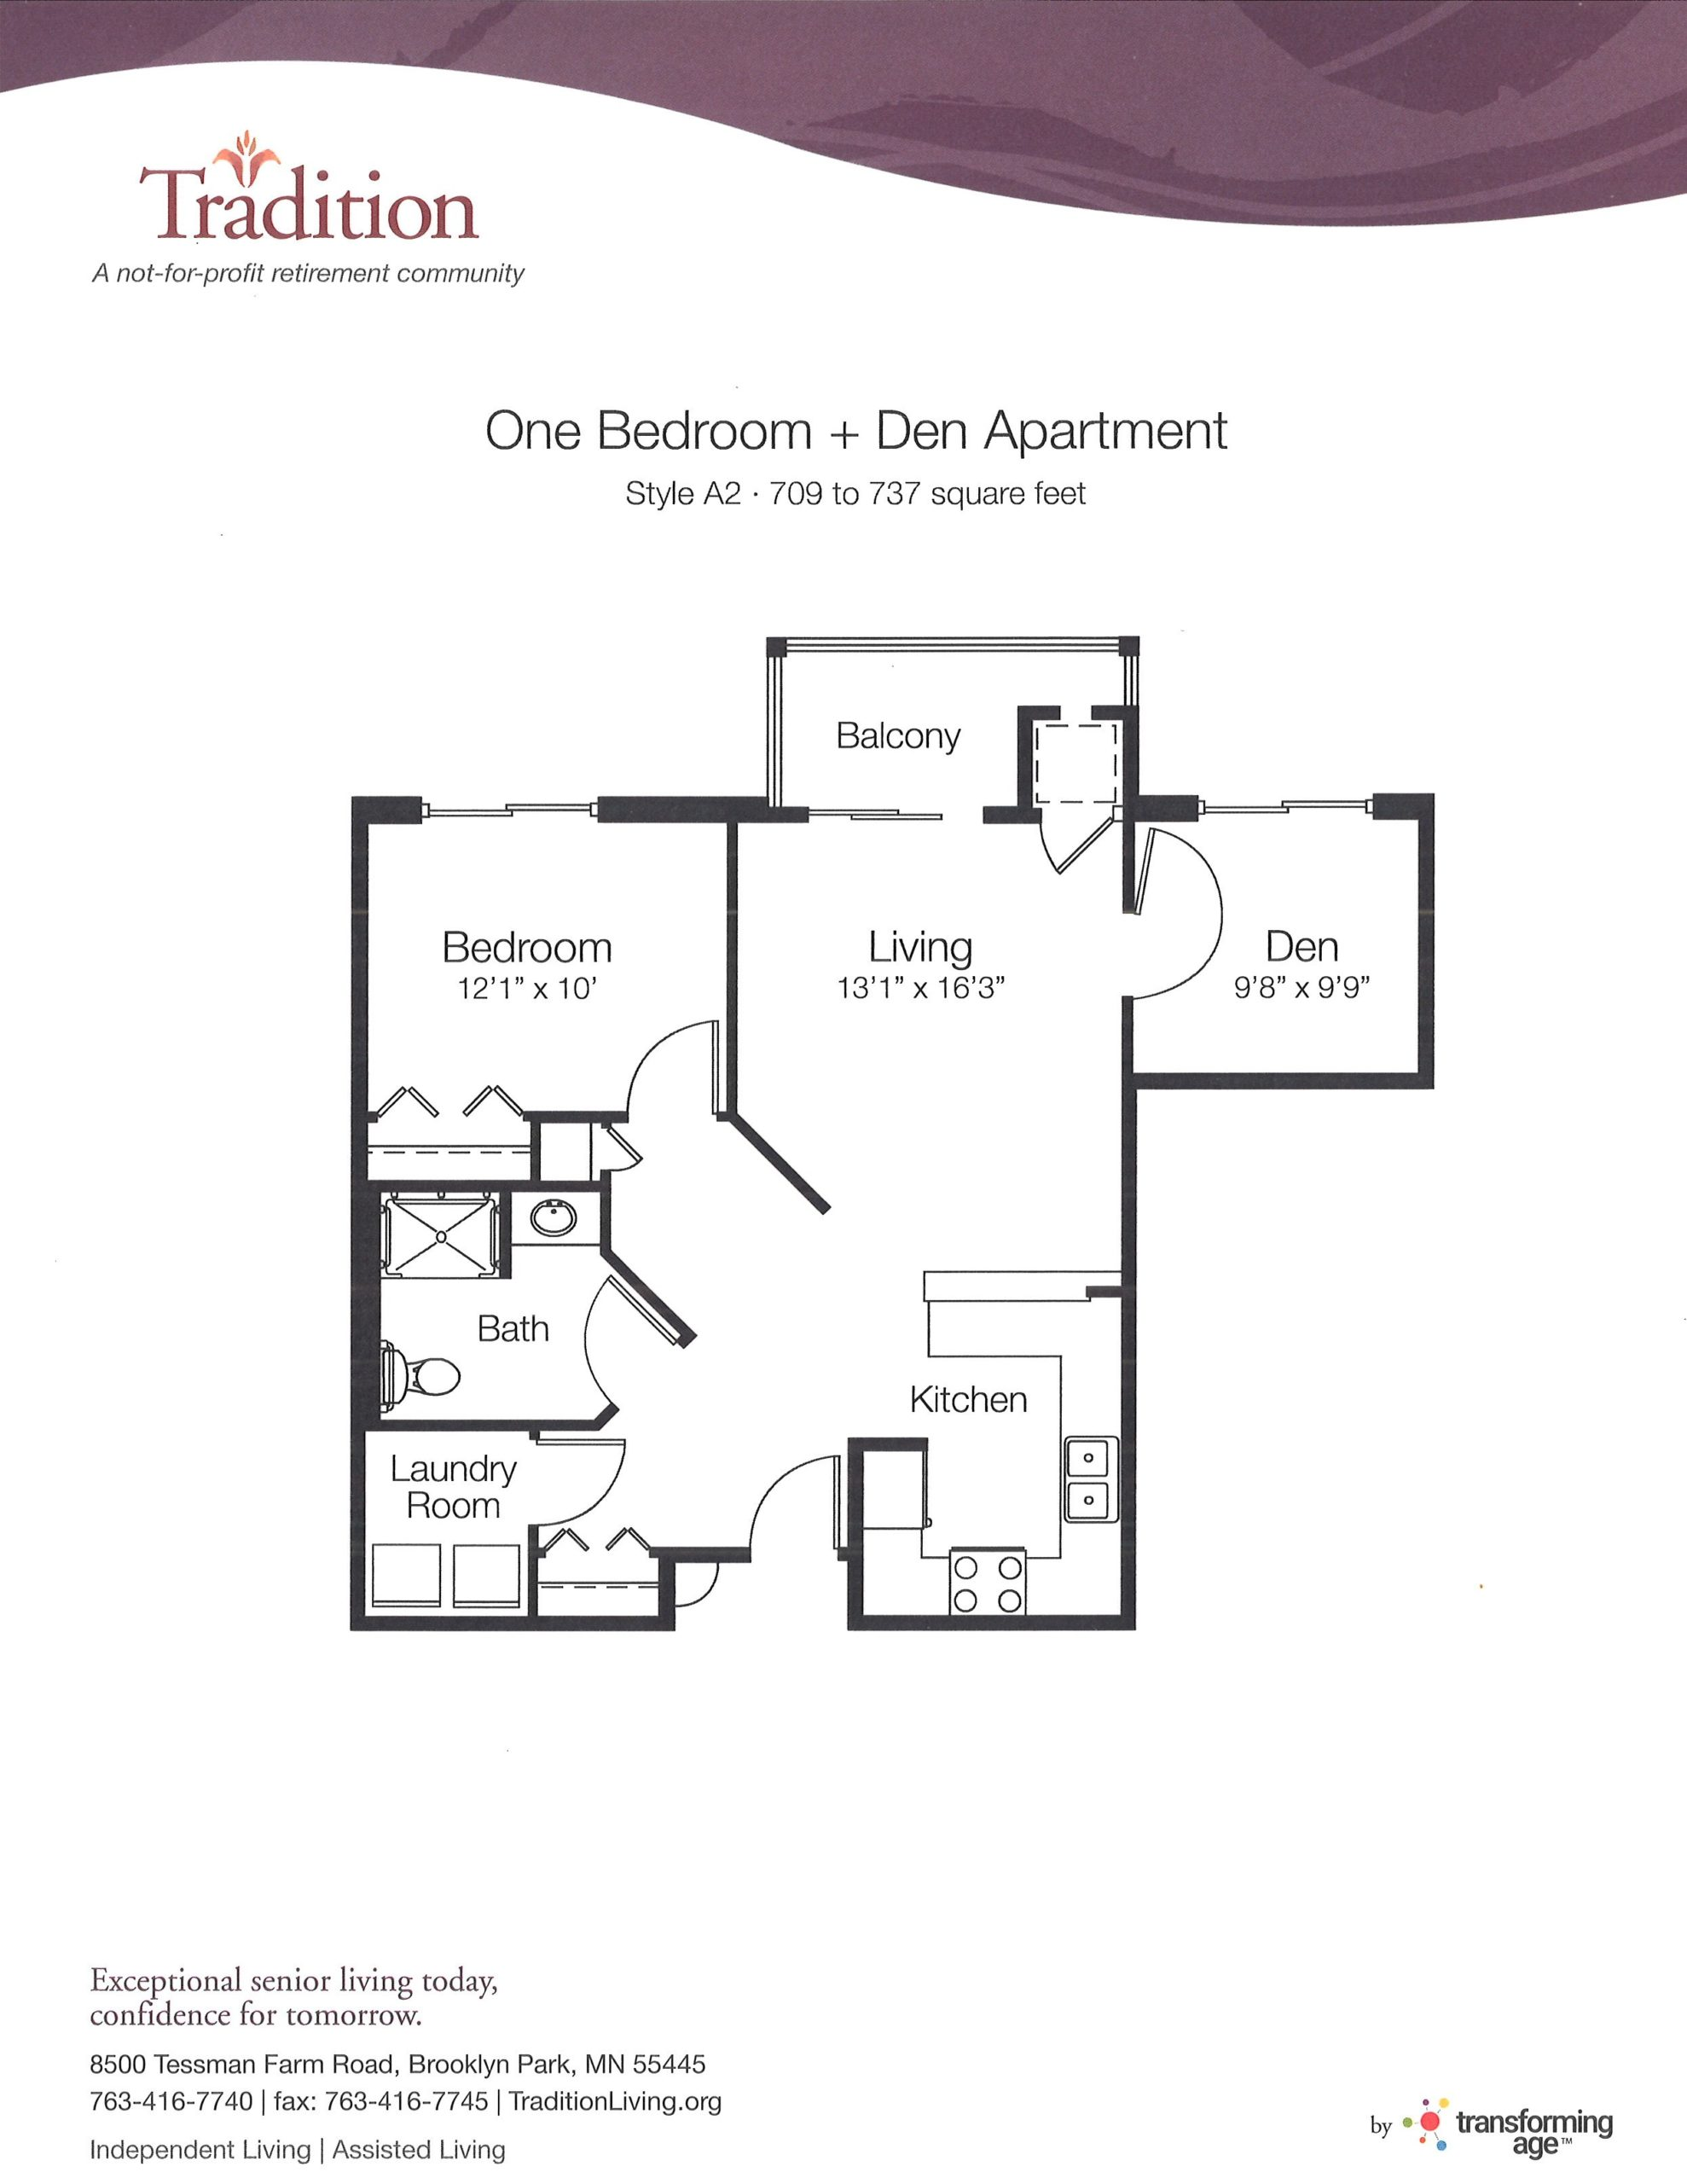 One Bedroom With Den (A2)